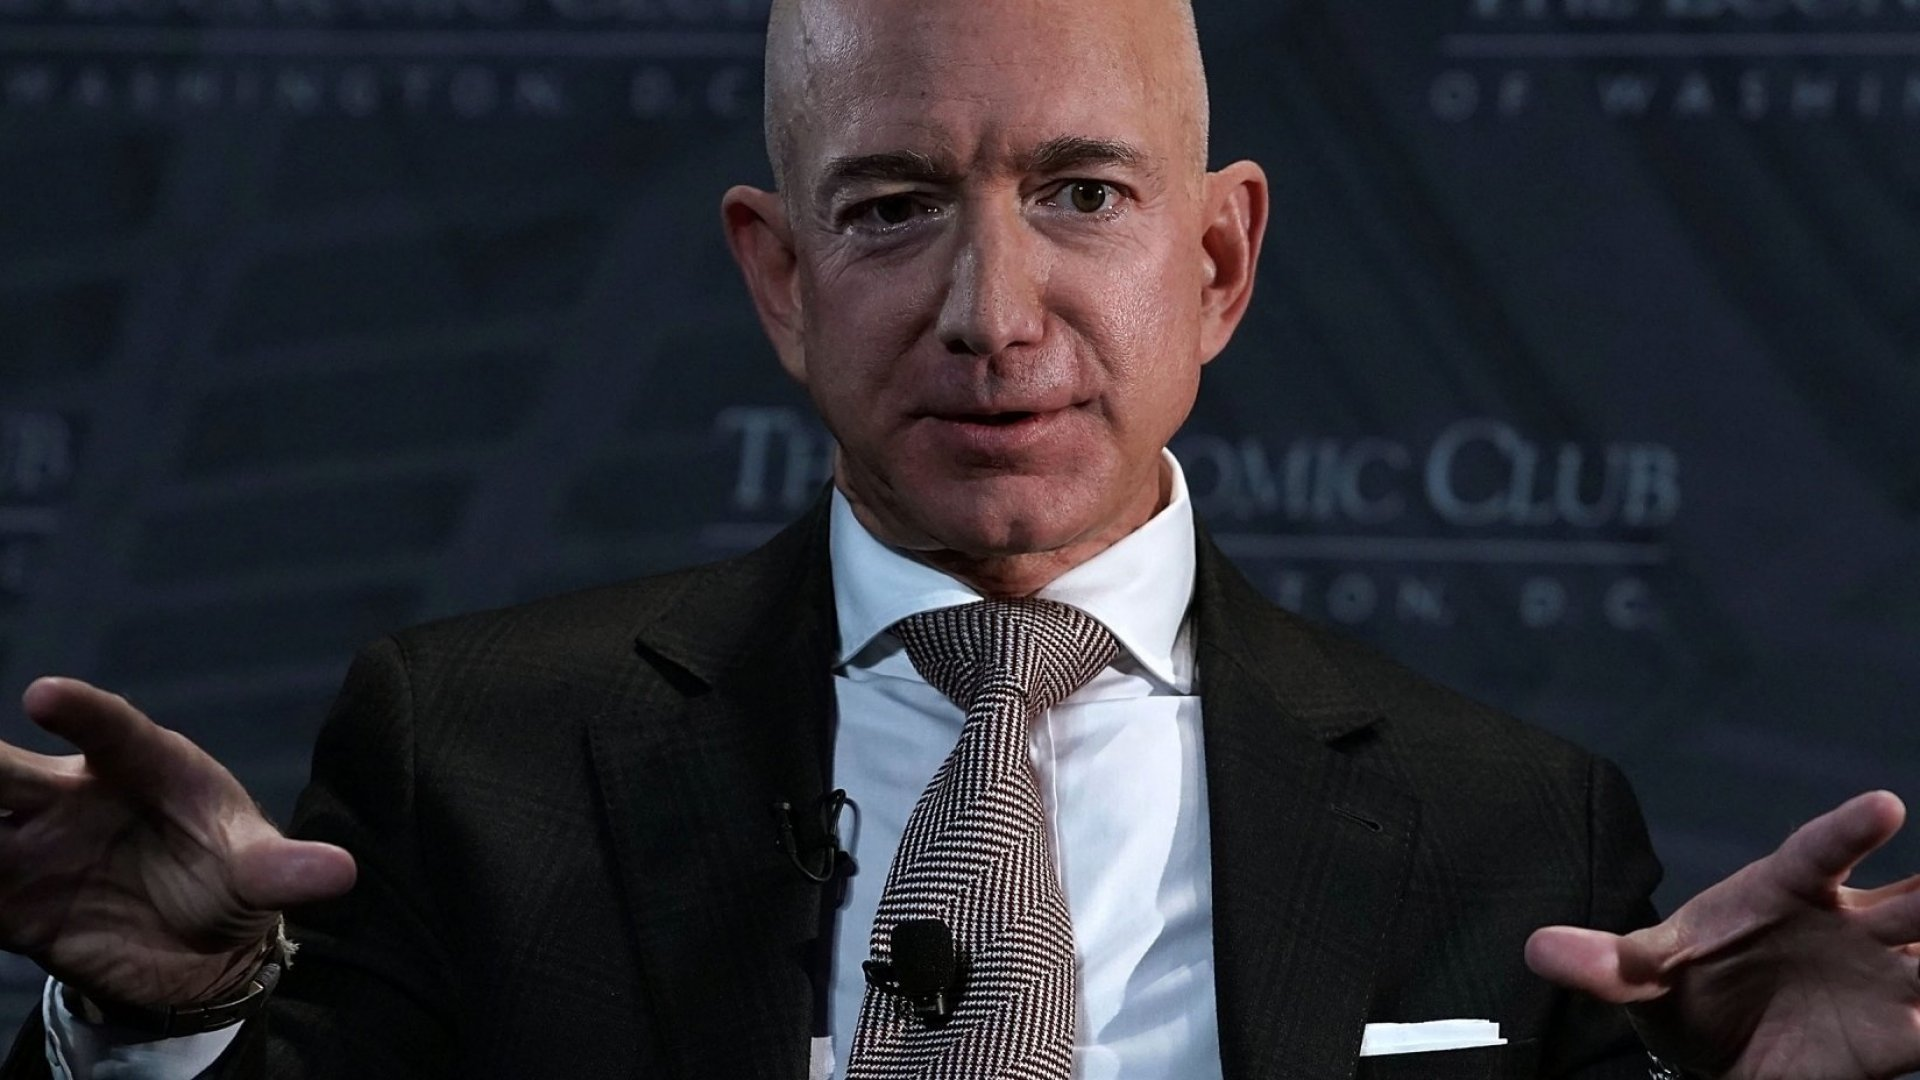 You've Probably Never Heard of Amazon Accelerator. This Strange Contract Clause Could Be Why